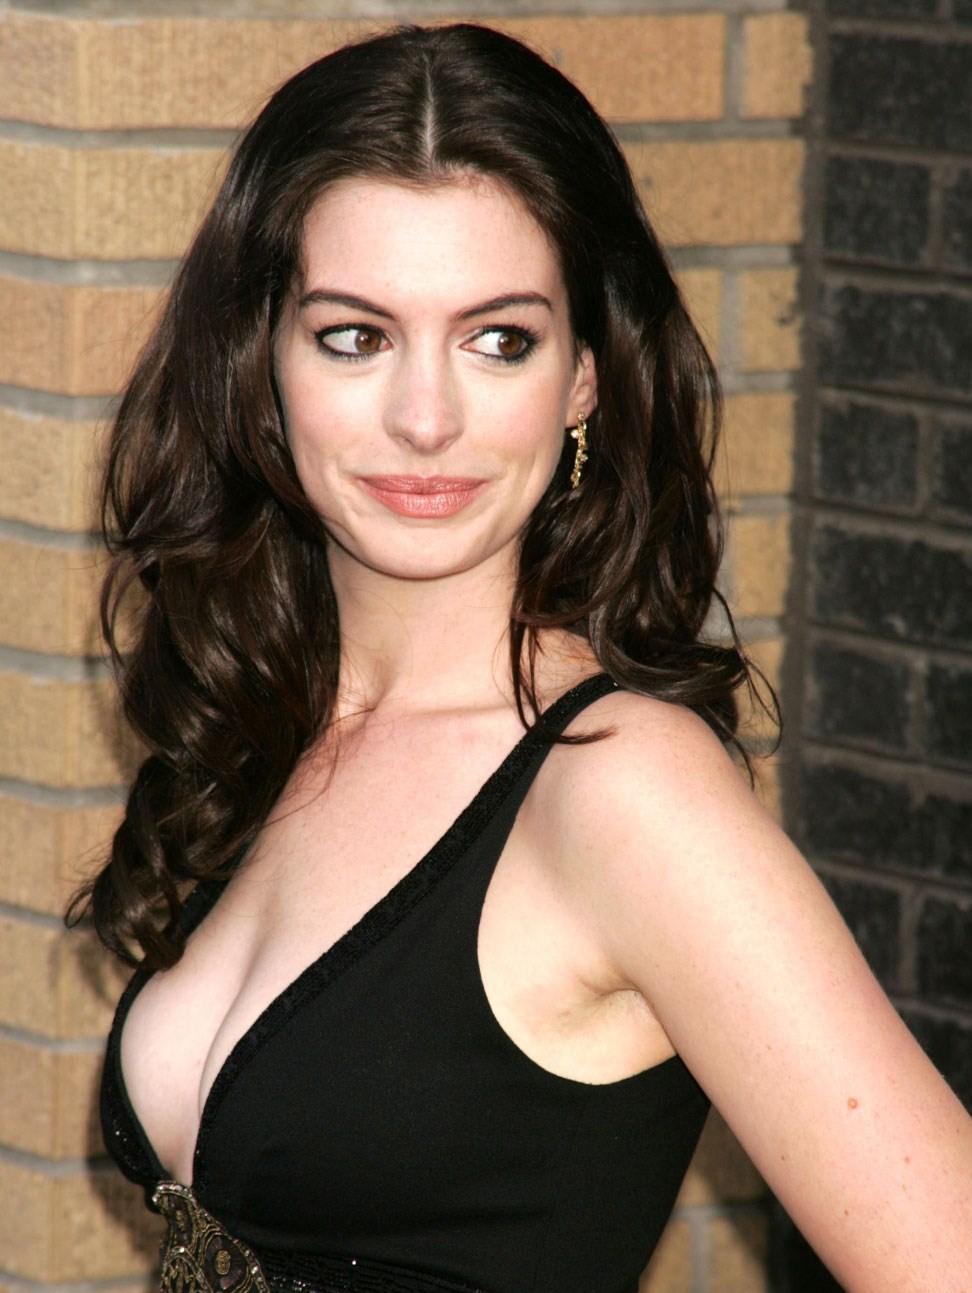 anne hathaway profile and latest pictures 2013 world